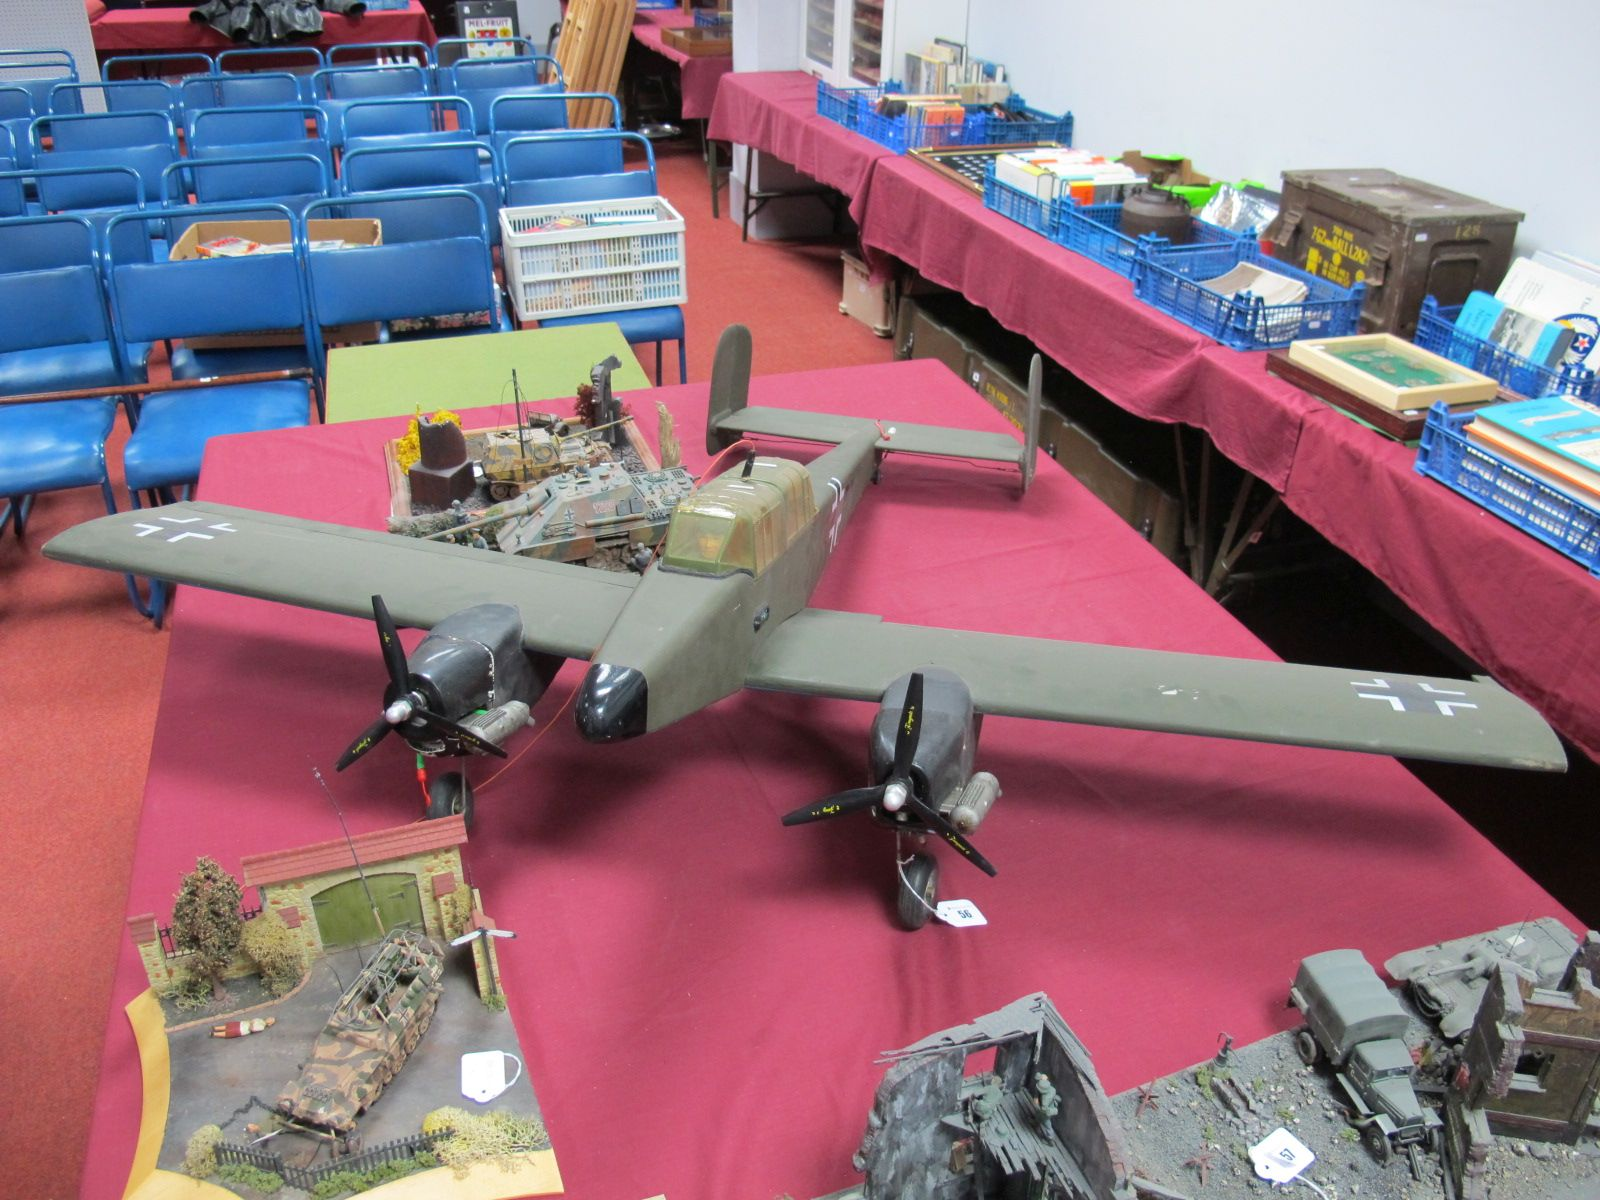 Lot 56 - A Large Scale Radio Controlled Model, of a German World War II Dornier type aircraft, wooden